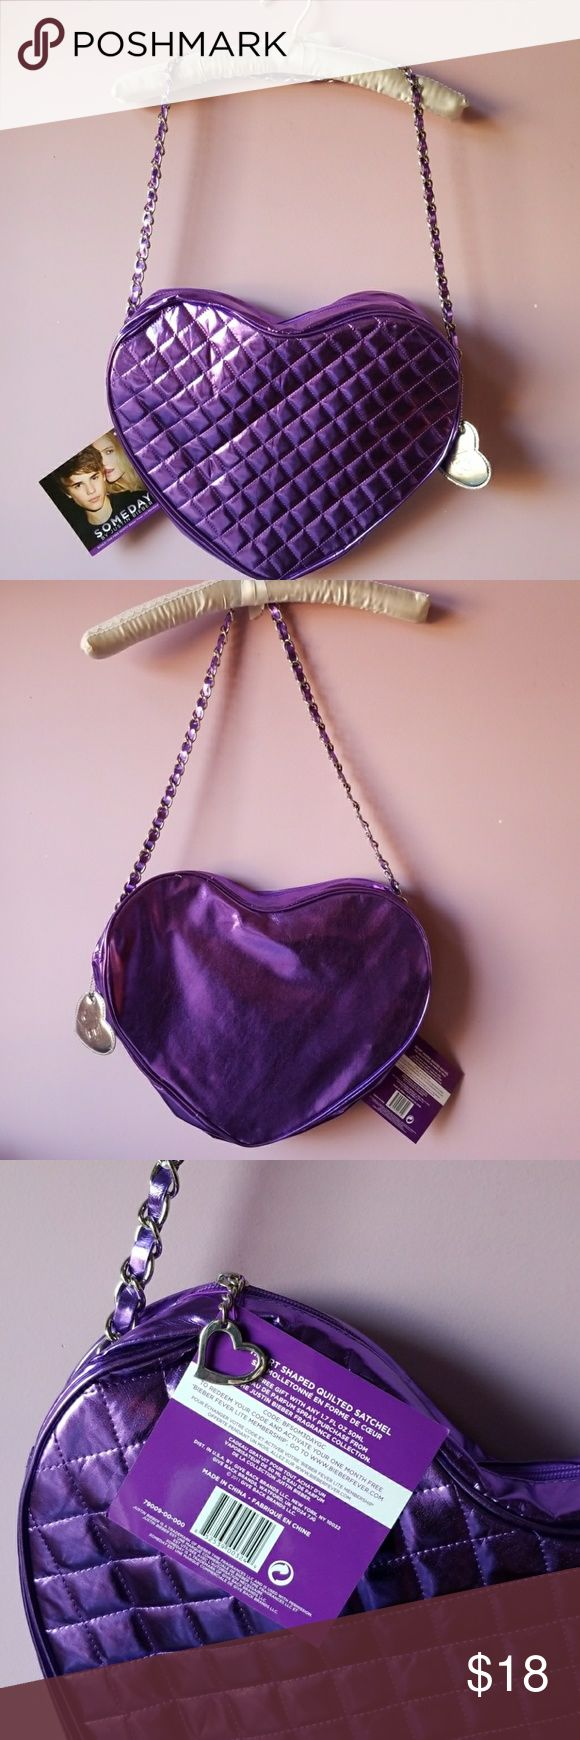 """Purple Shiny Heart Satchel Purse Justin Bieber New With Tags!  Shiny Purple Heart Lame Vinyl ! Quilted Pattern on Front  Satchel Purse Tote Justin Bieber  Zip Top Lined Bonus Silver Heart Key Chain Tag Purple Lame Accents Thru the Sturdy Silver Chain Link Strap Strap Drop 15"""" 3"""" Expansion  @ 15"""" Wide @ 12"""" Tall   ✔BUNDLE UP FOR SAVINGS ✔ Justin Bieber Bags Satchels"""